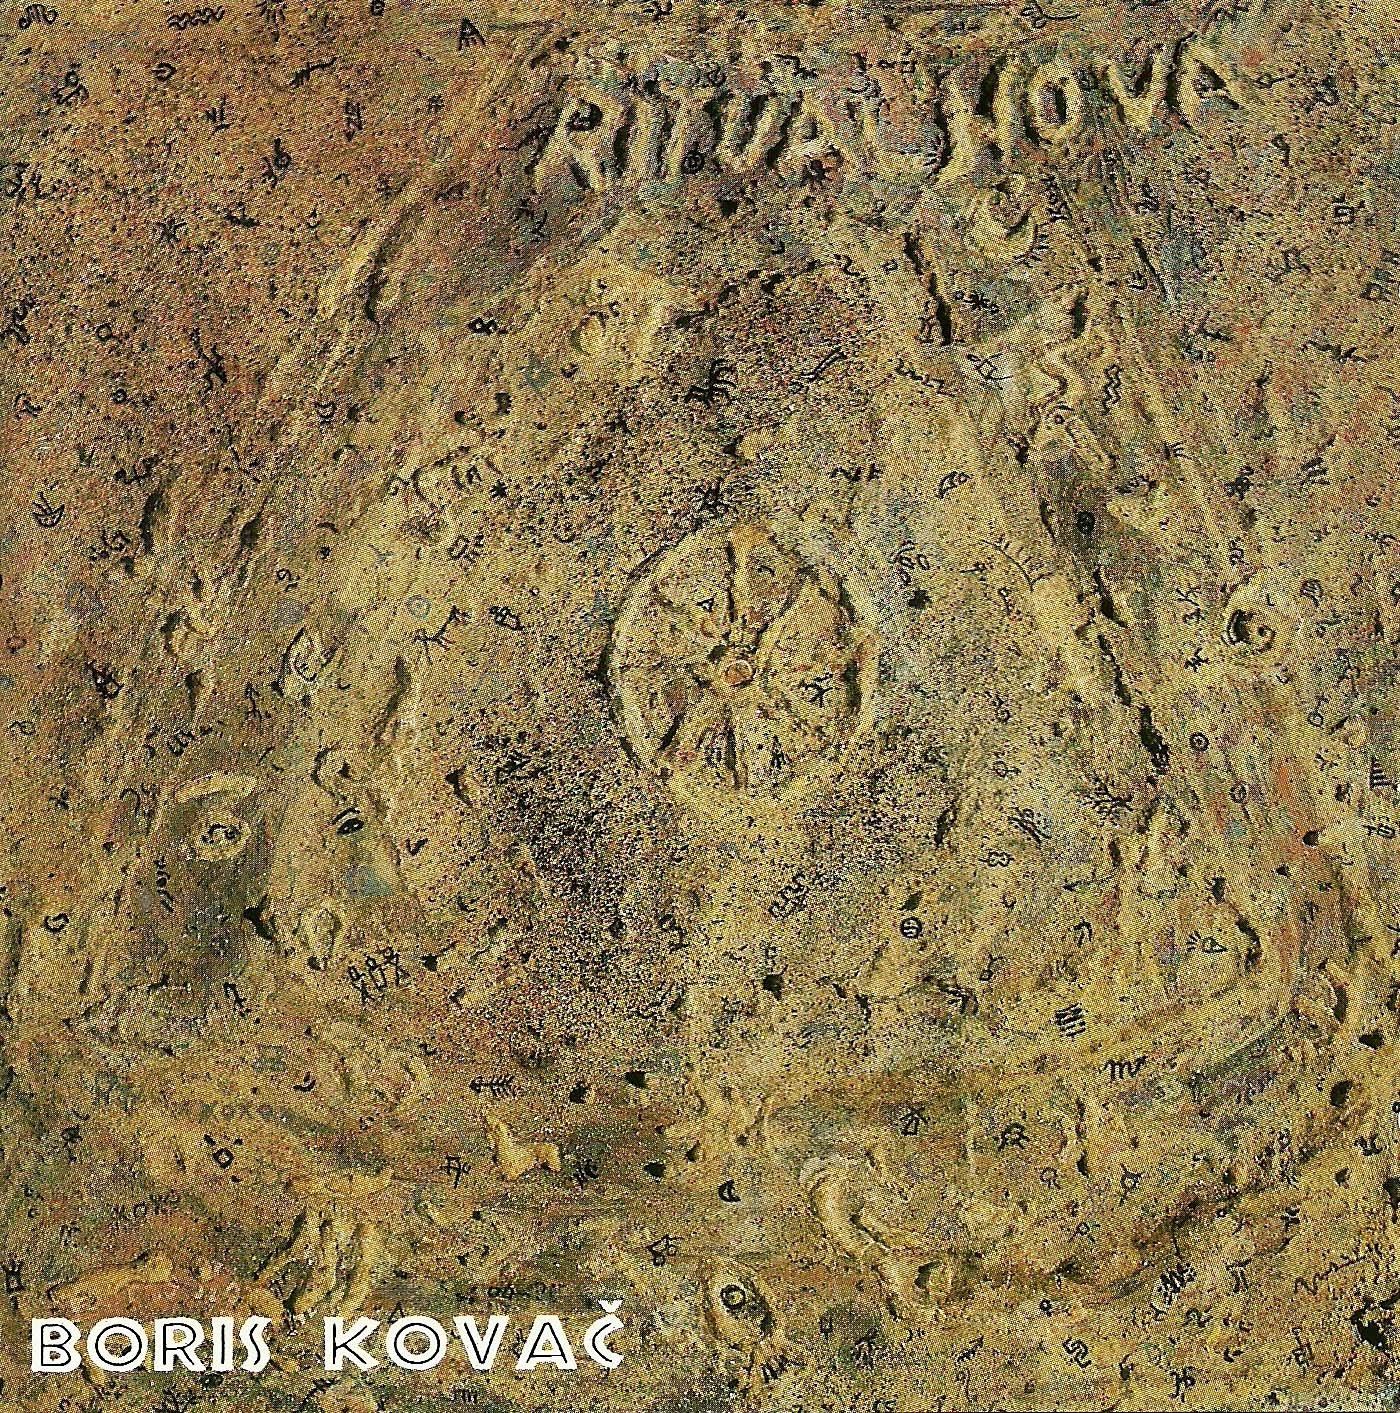 boris kovac - From Ritual Nova I & II